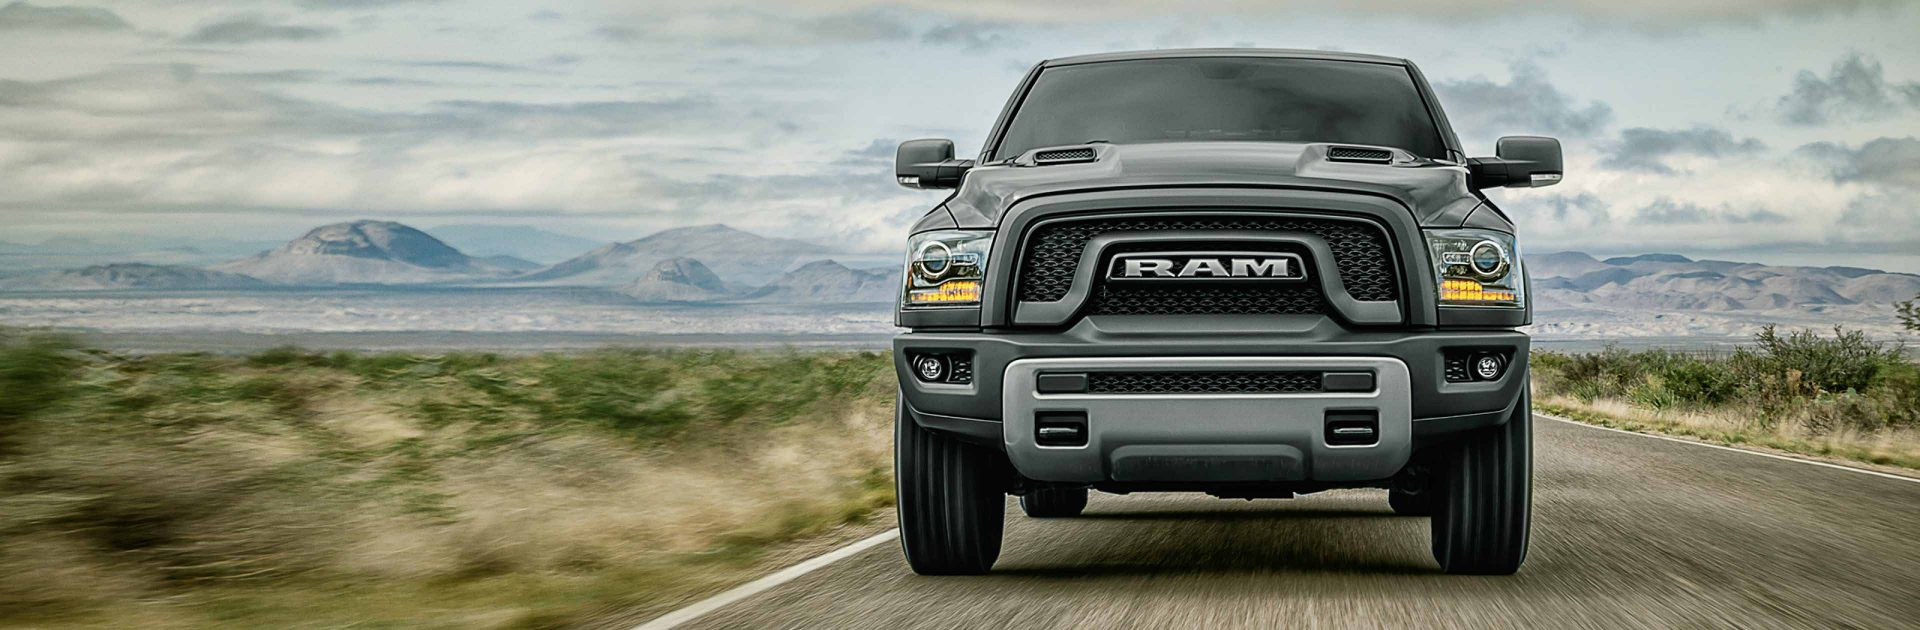 2018 Ram Trucks 1500 Front View Capability